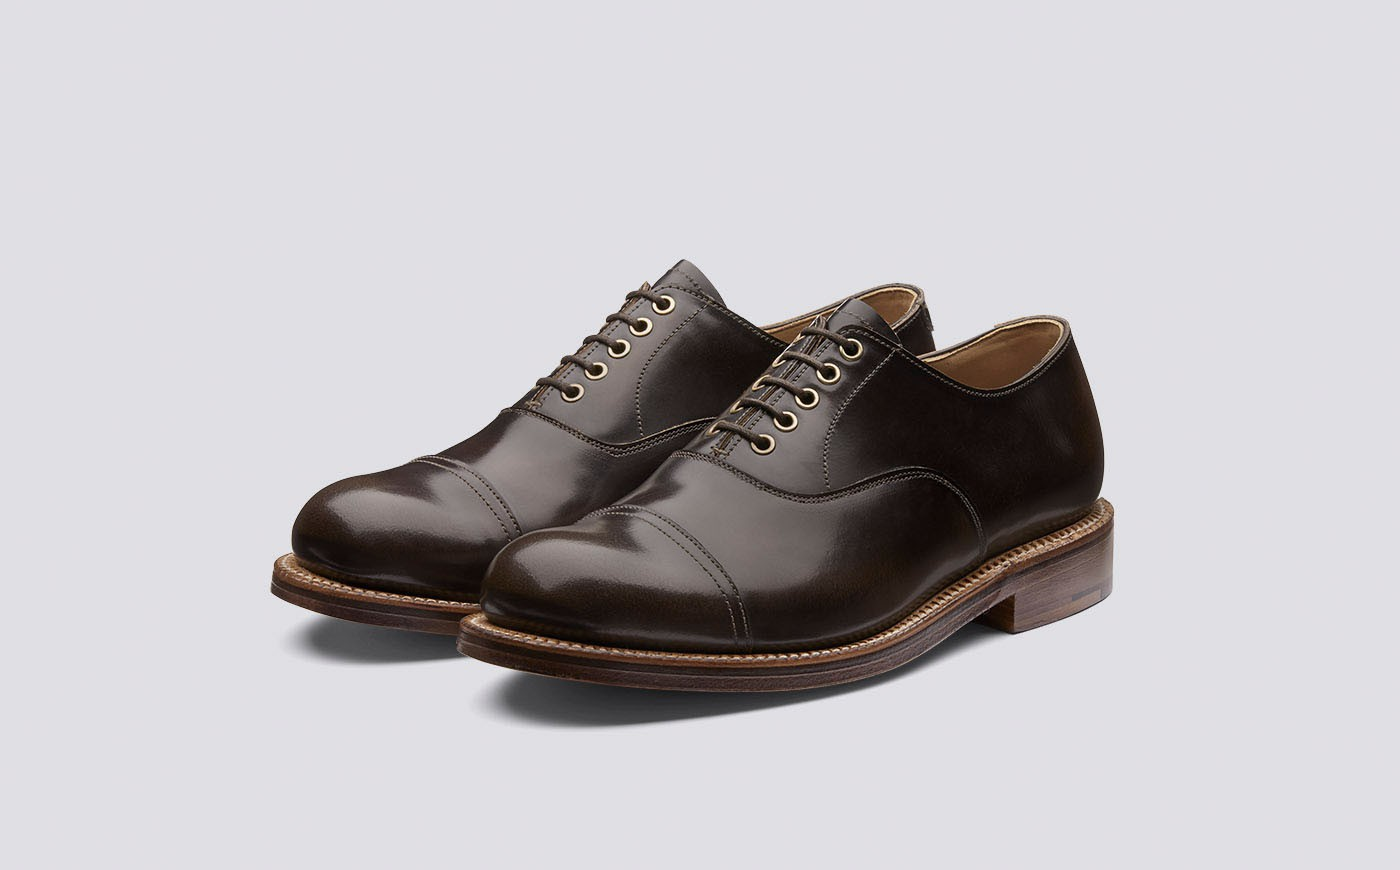 Grenson Pickled Walnut Douglas